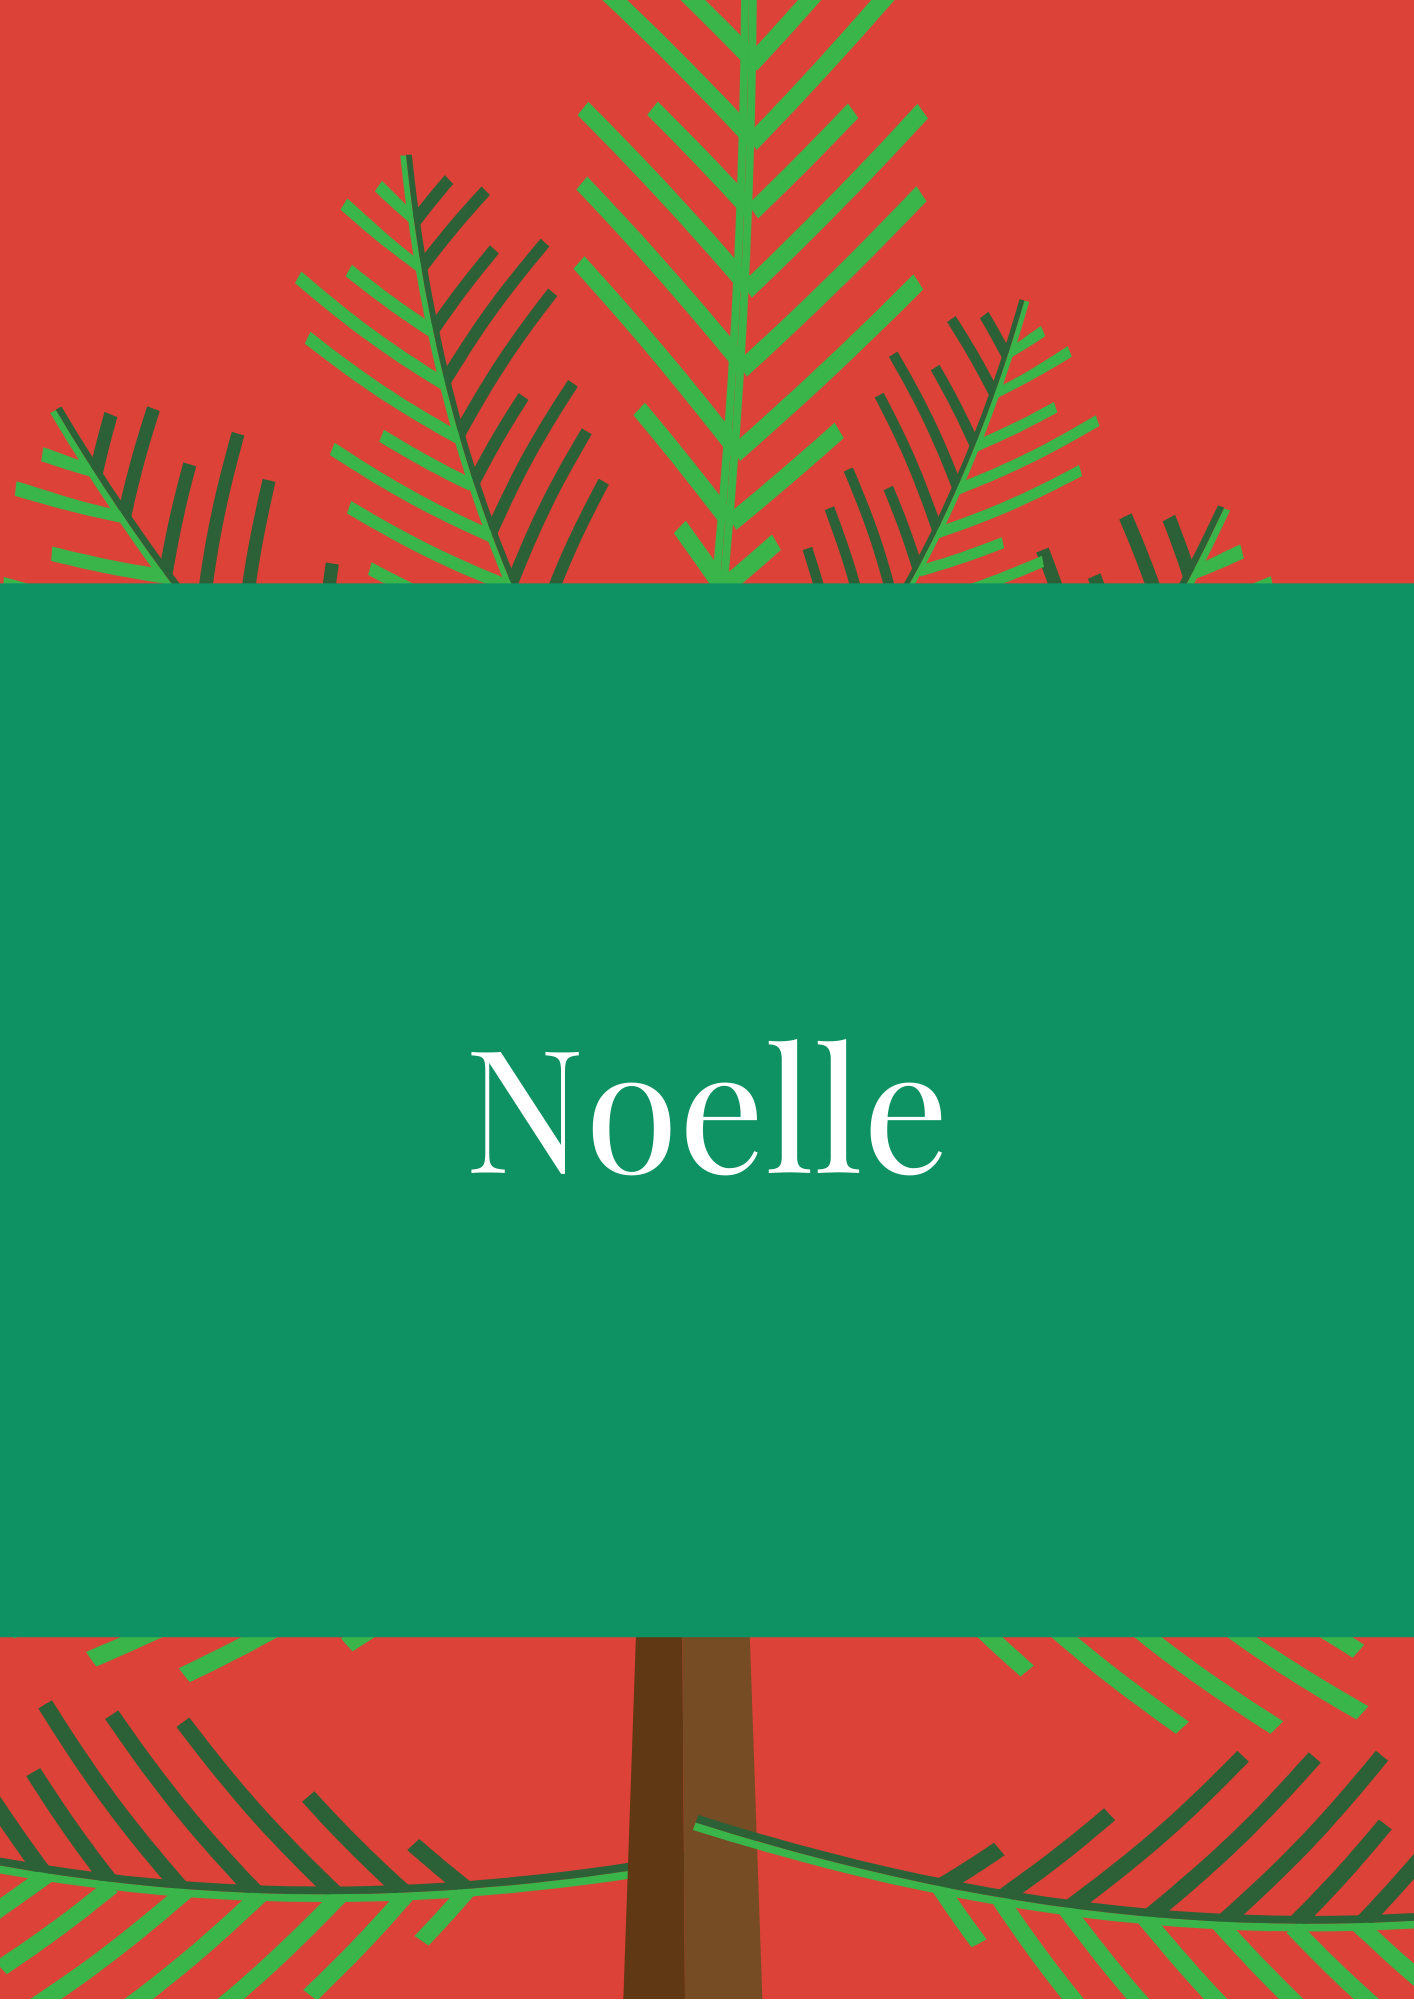 Noelle Elf Names